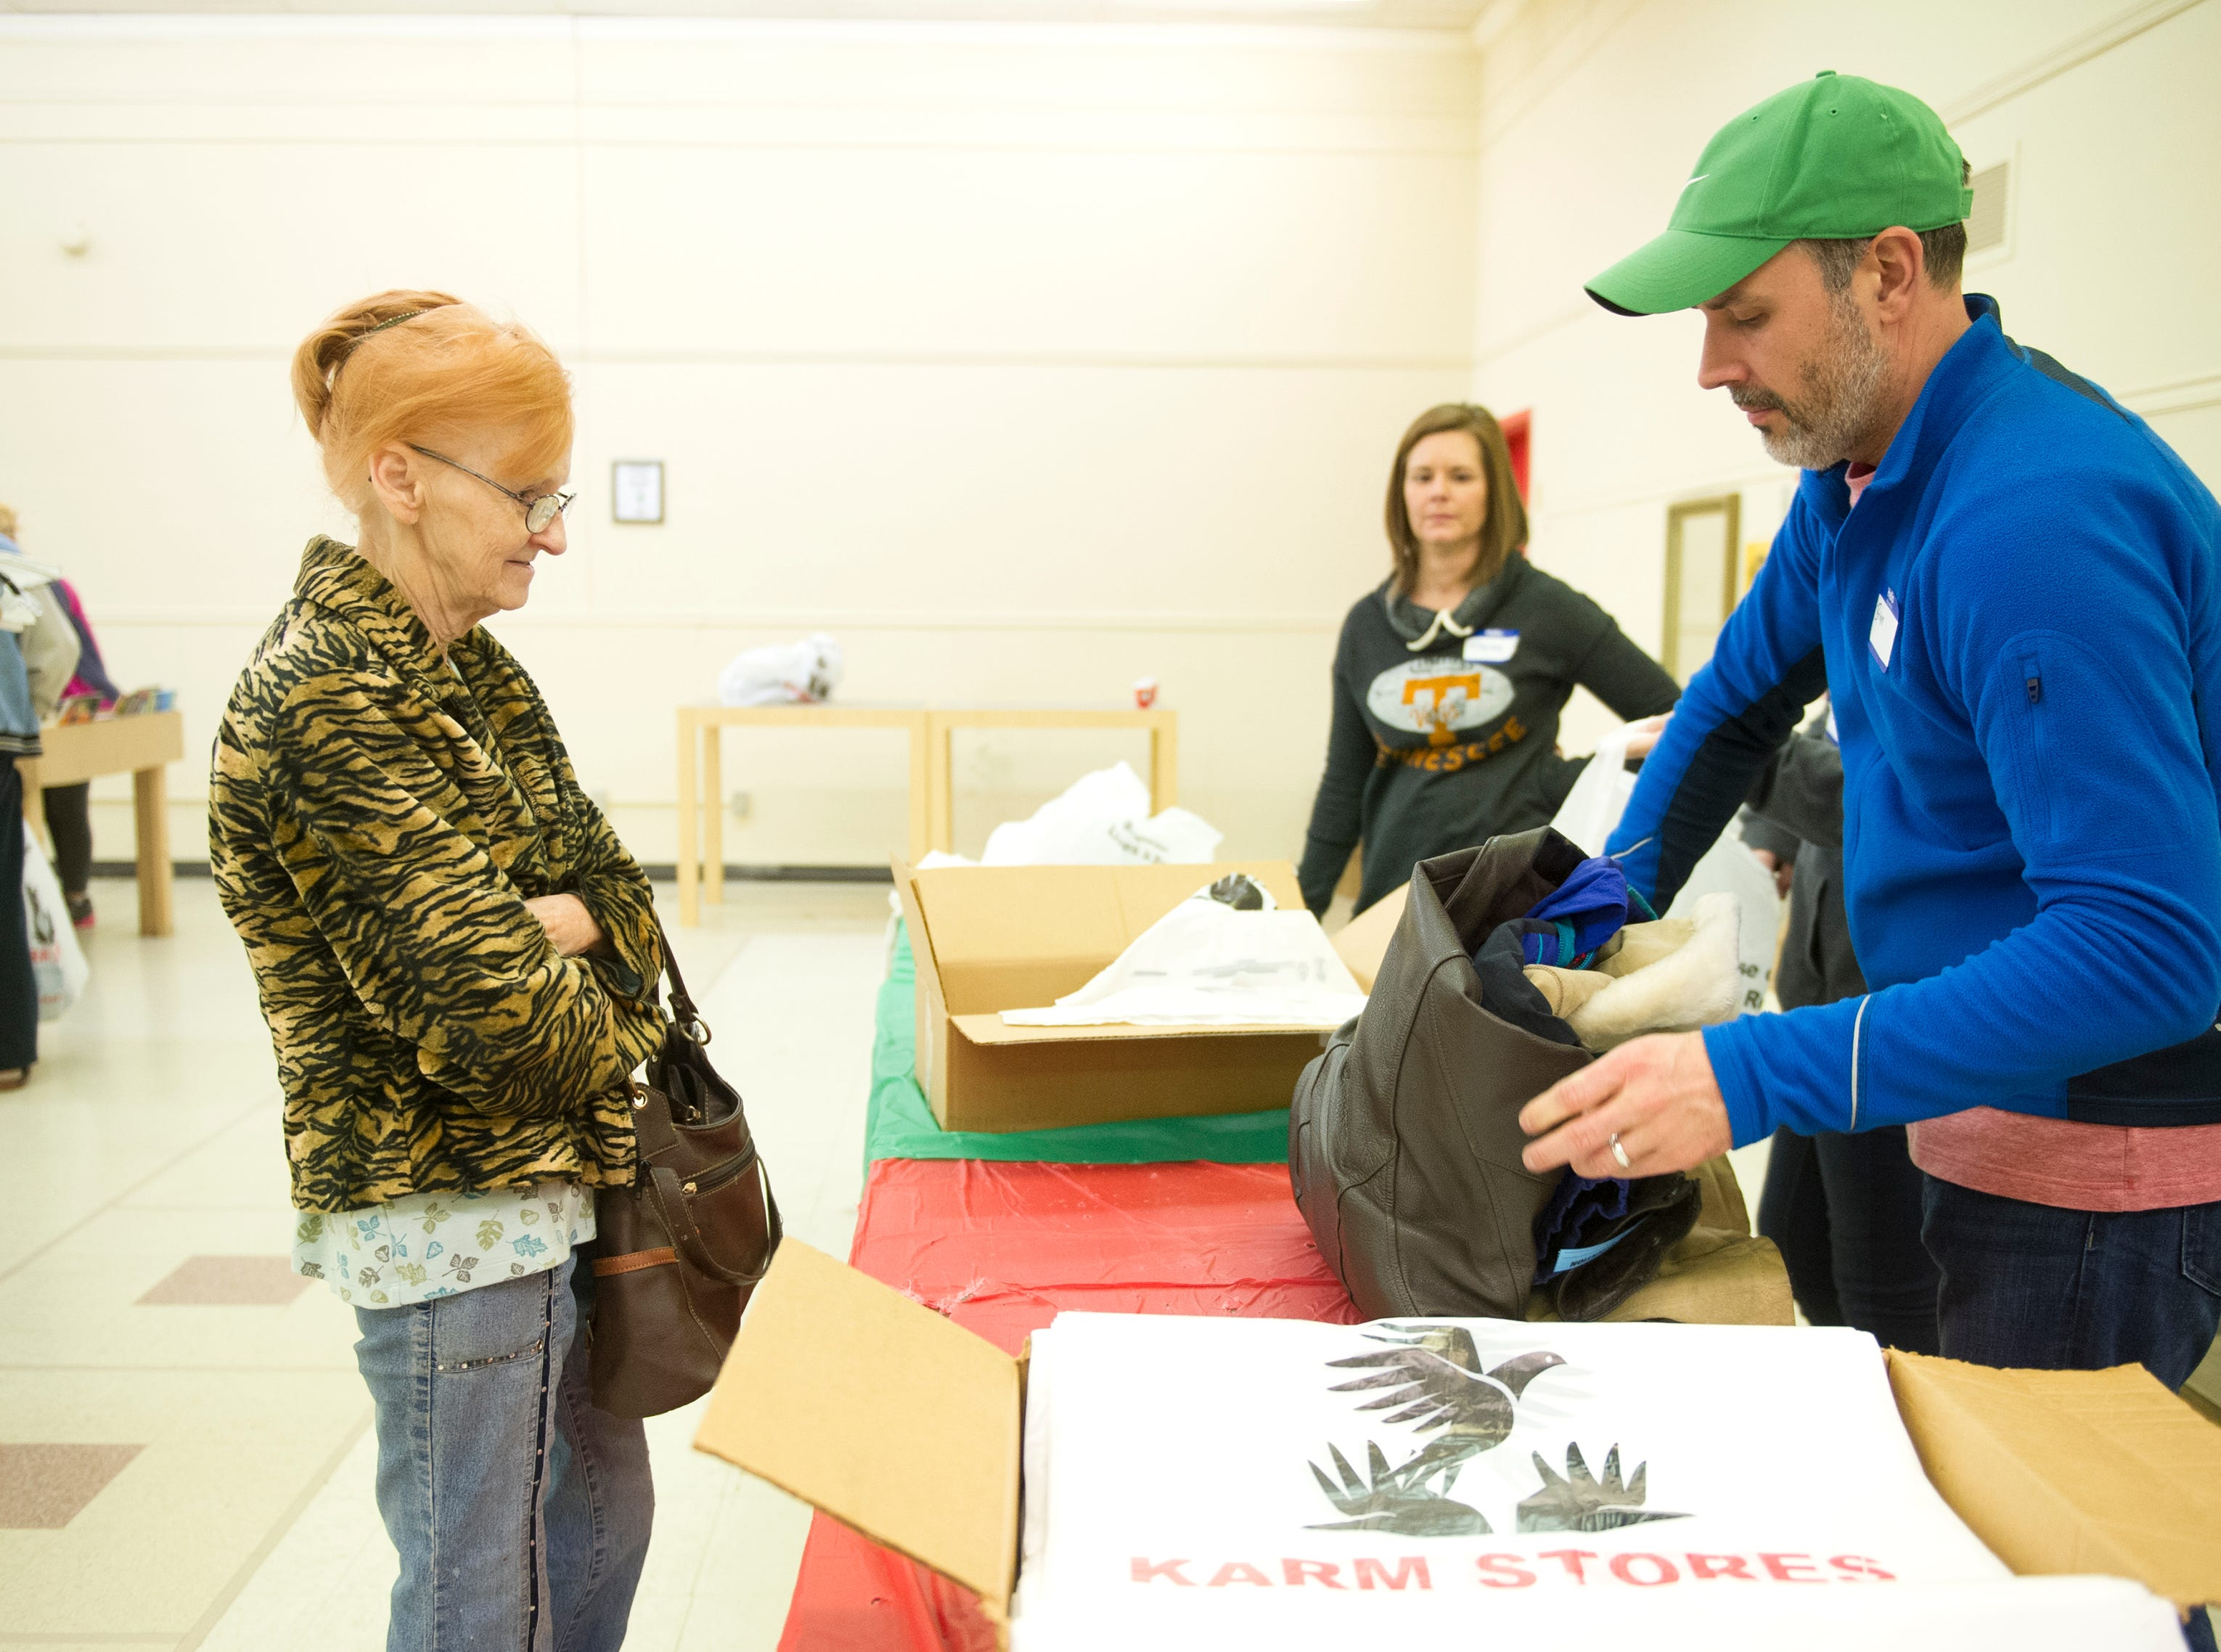 Janice Staton of Knoxville (left) waits as Volunteer Brian Mason wraps her coats up during KARM's 30th annual Coats for the Cold coat drive in Knoxville Saturday, Dec. 5, 2015.